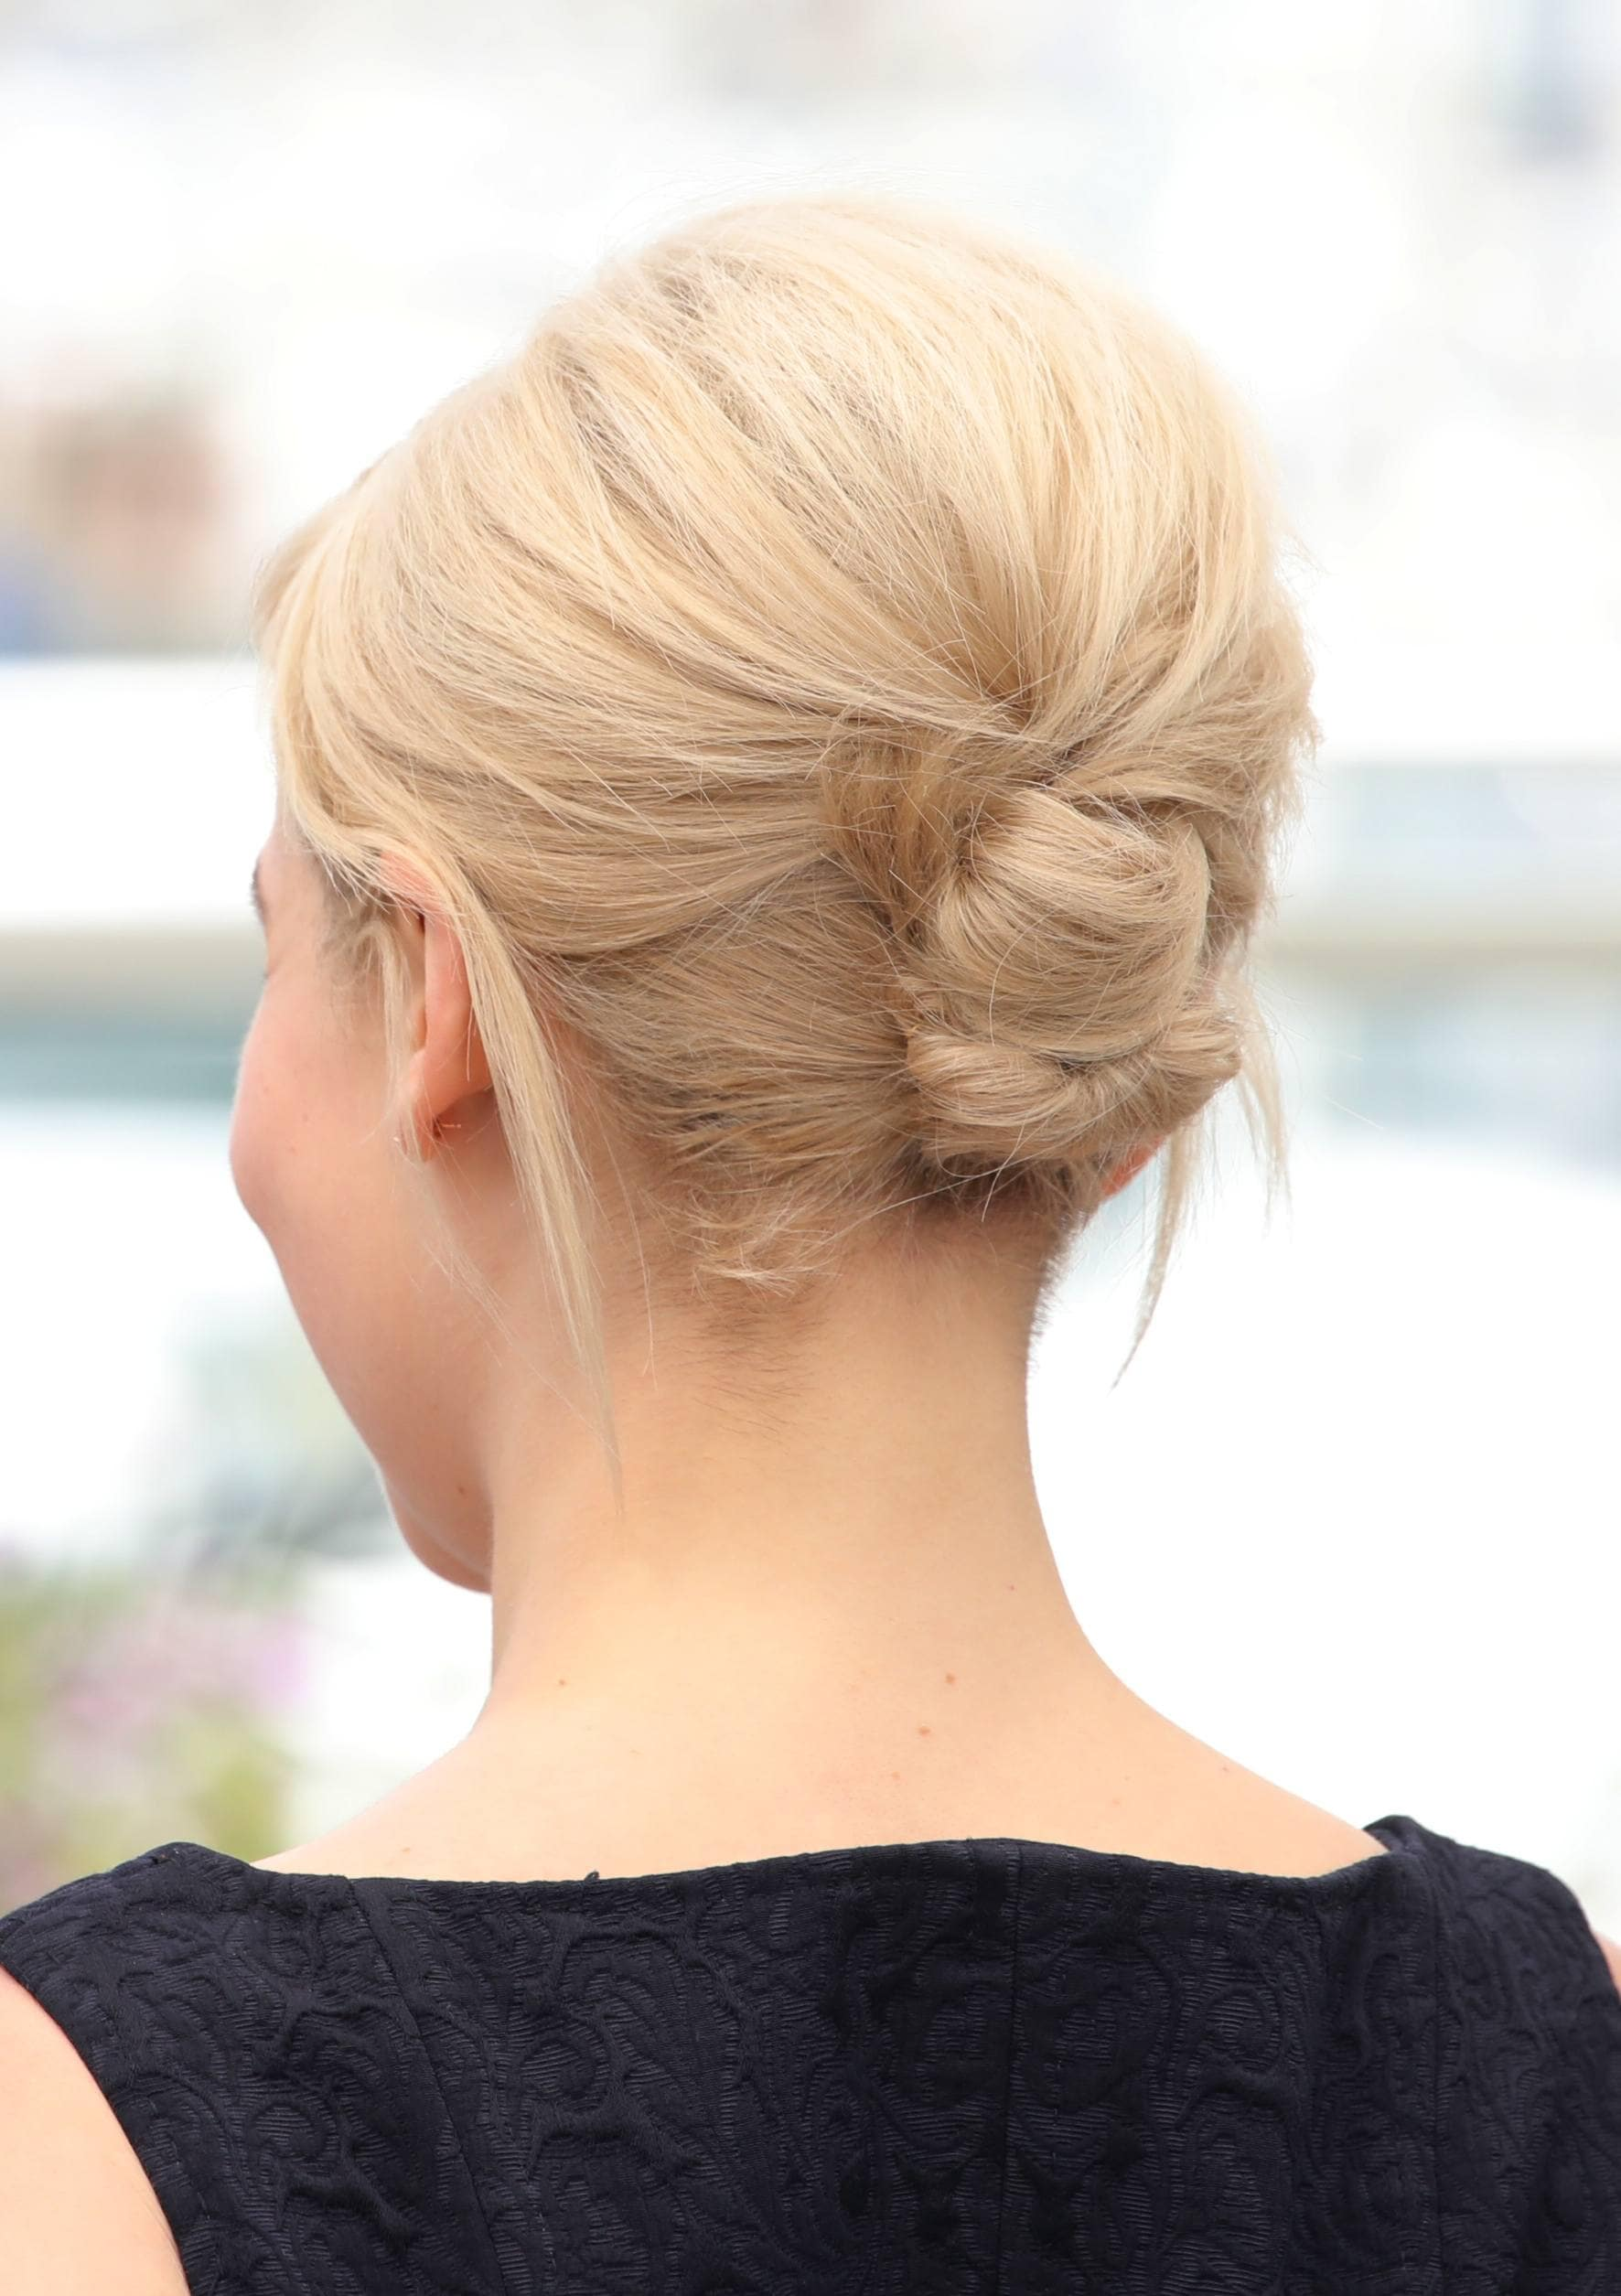 13 Fabulous Updos For Medium Hair